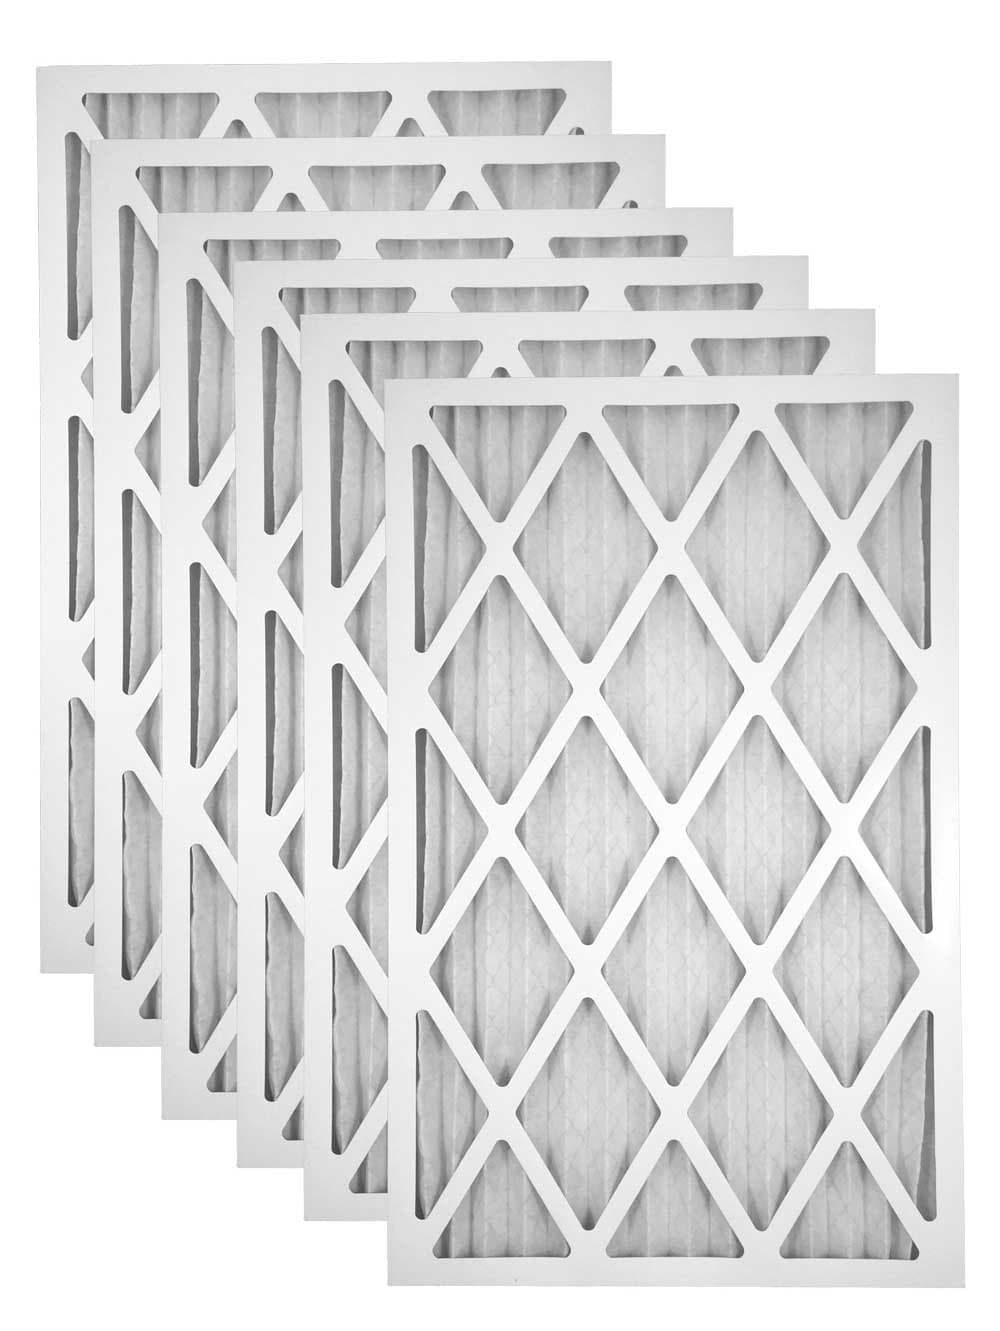 16x16x1 Merv 11 Pleated AC Furnace Filter - Case of 6